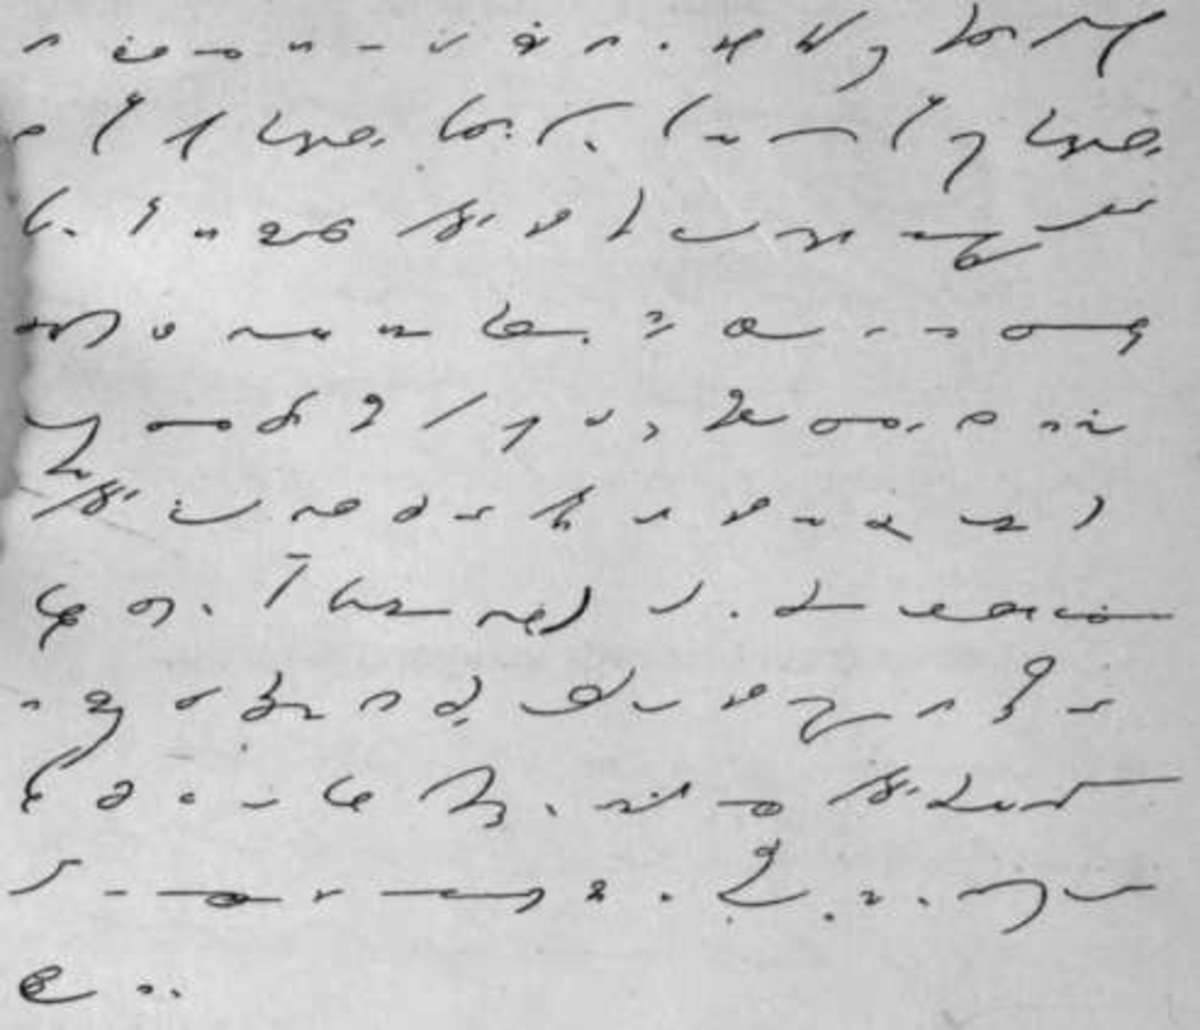 Notes: An extract from Abraham Lincoln's shorthand notes for a speech